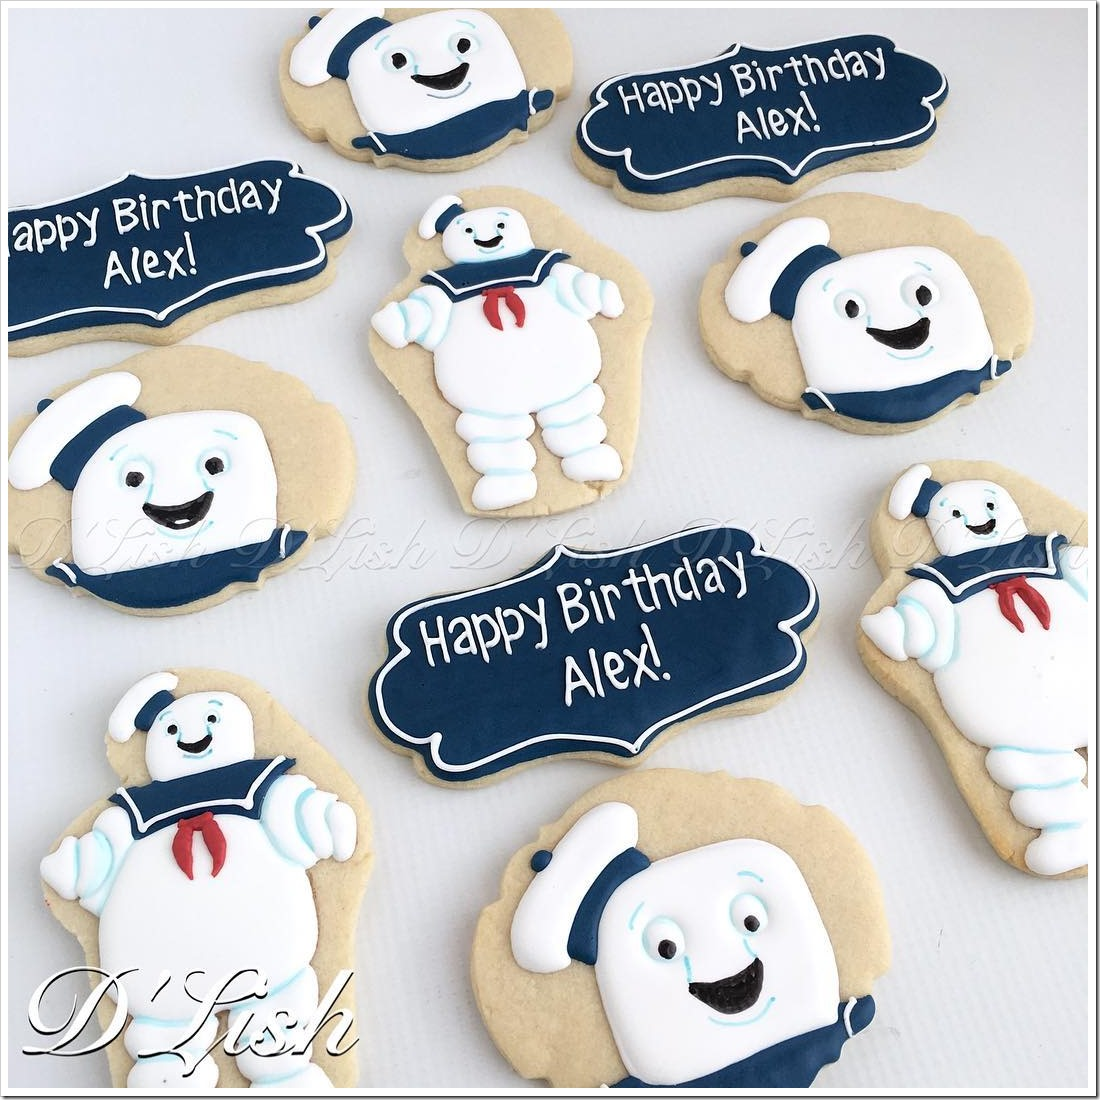 Stay Puft Marshmallow Man Cookies